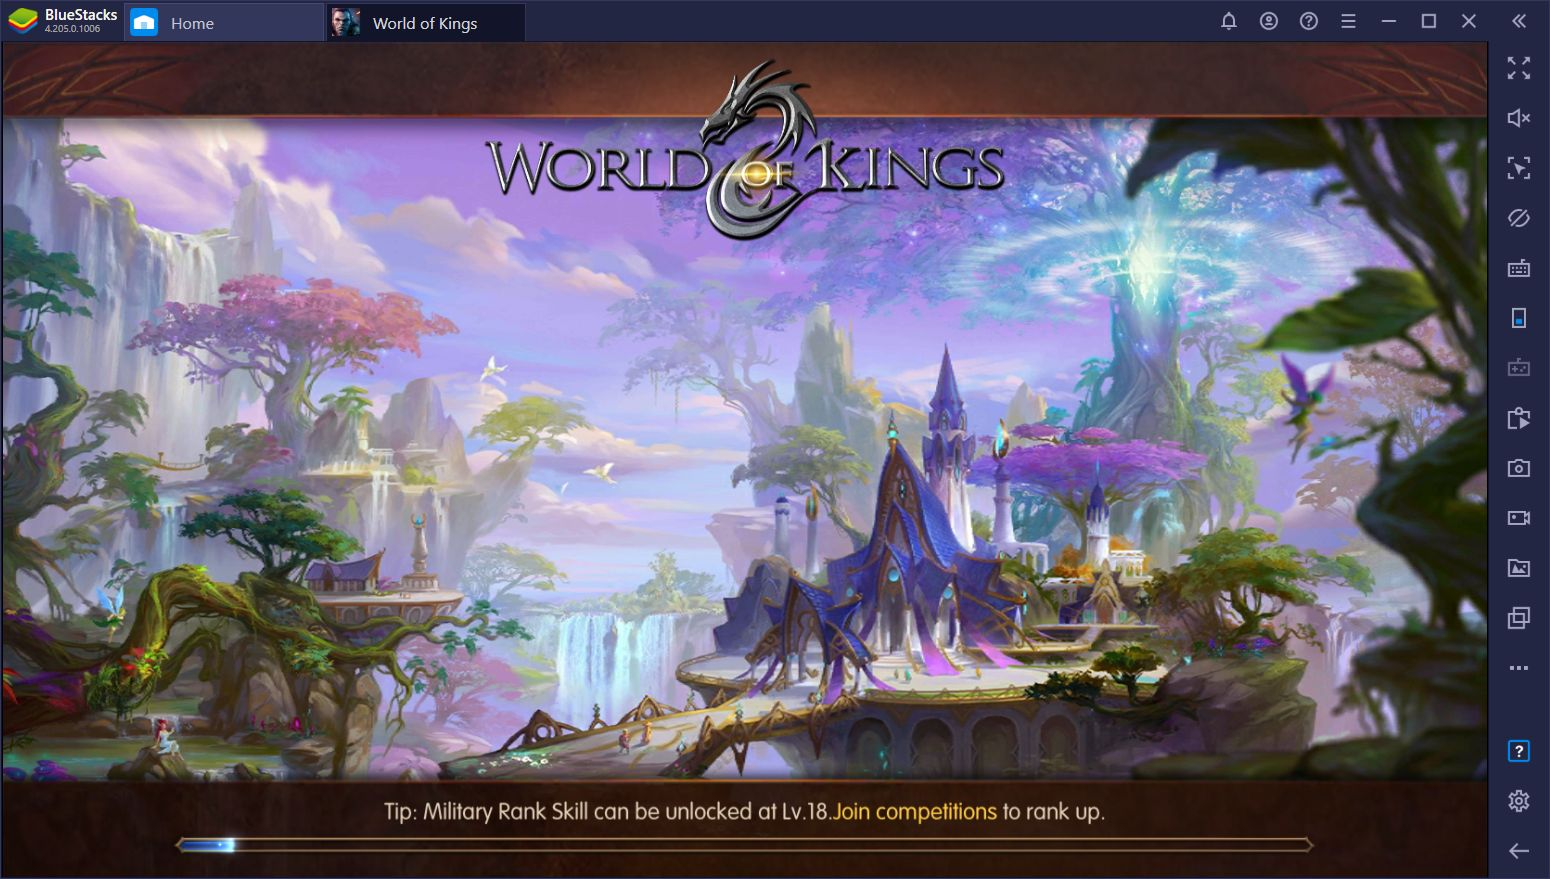 World of Kings – Conquer This RPG With Guides on Gameplay, Classes, Combat and More